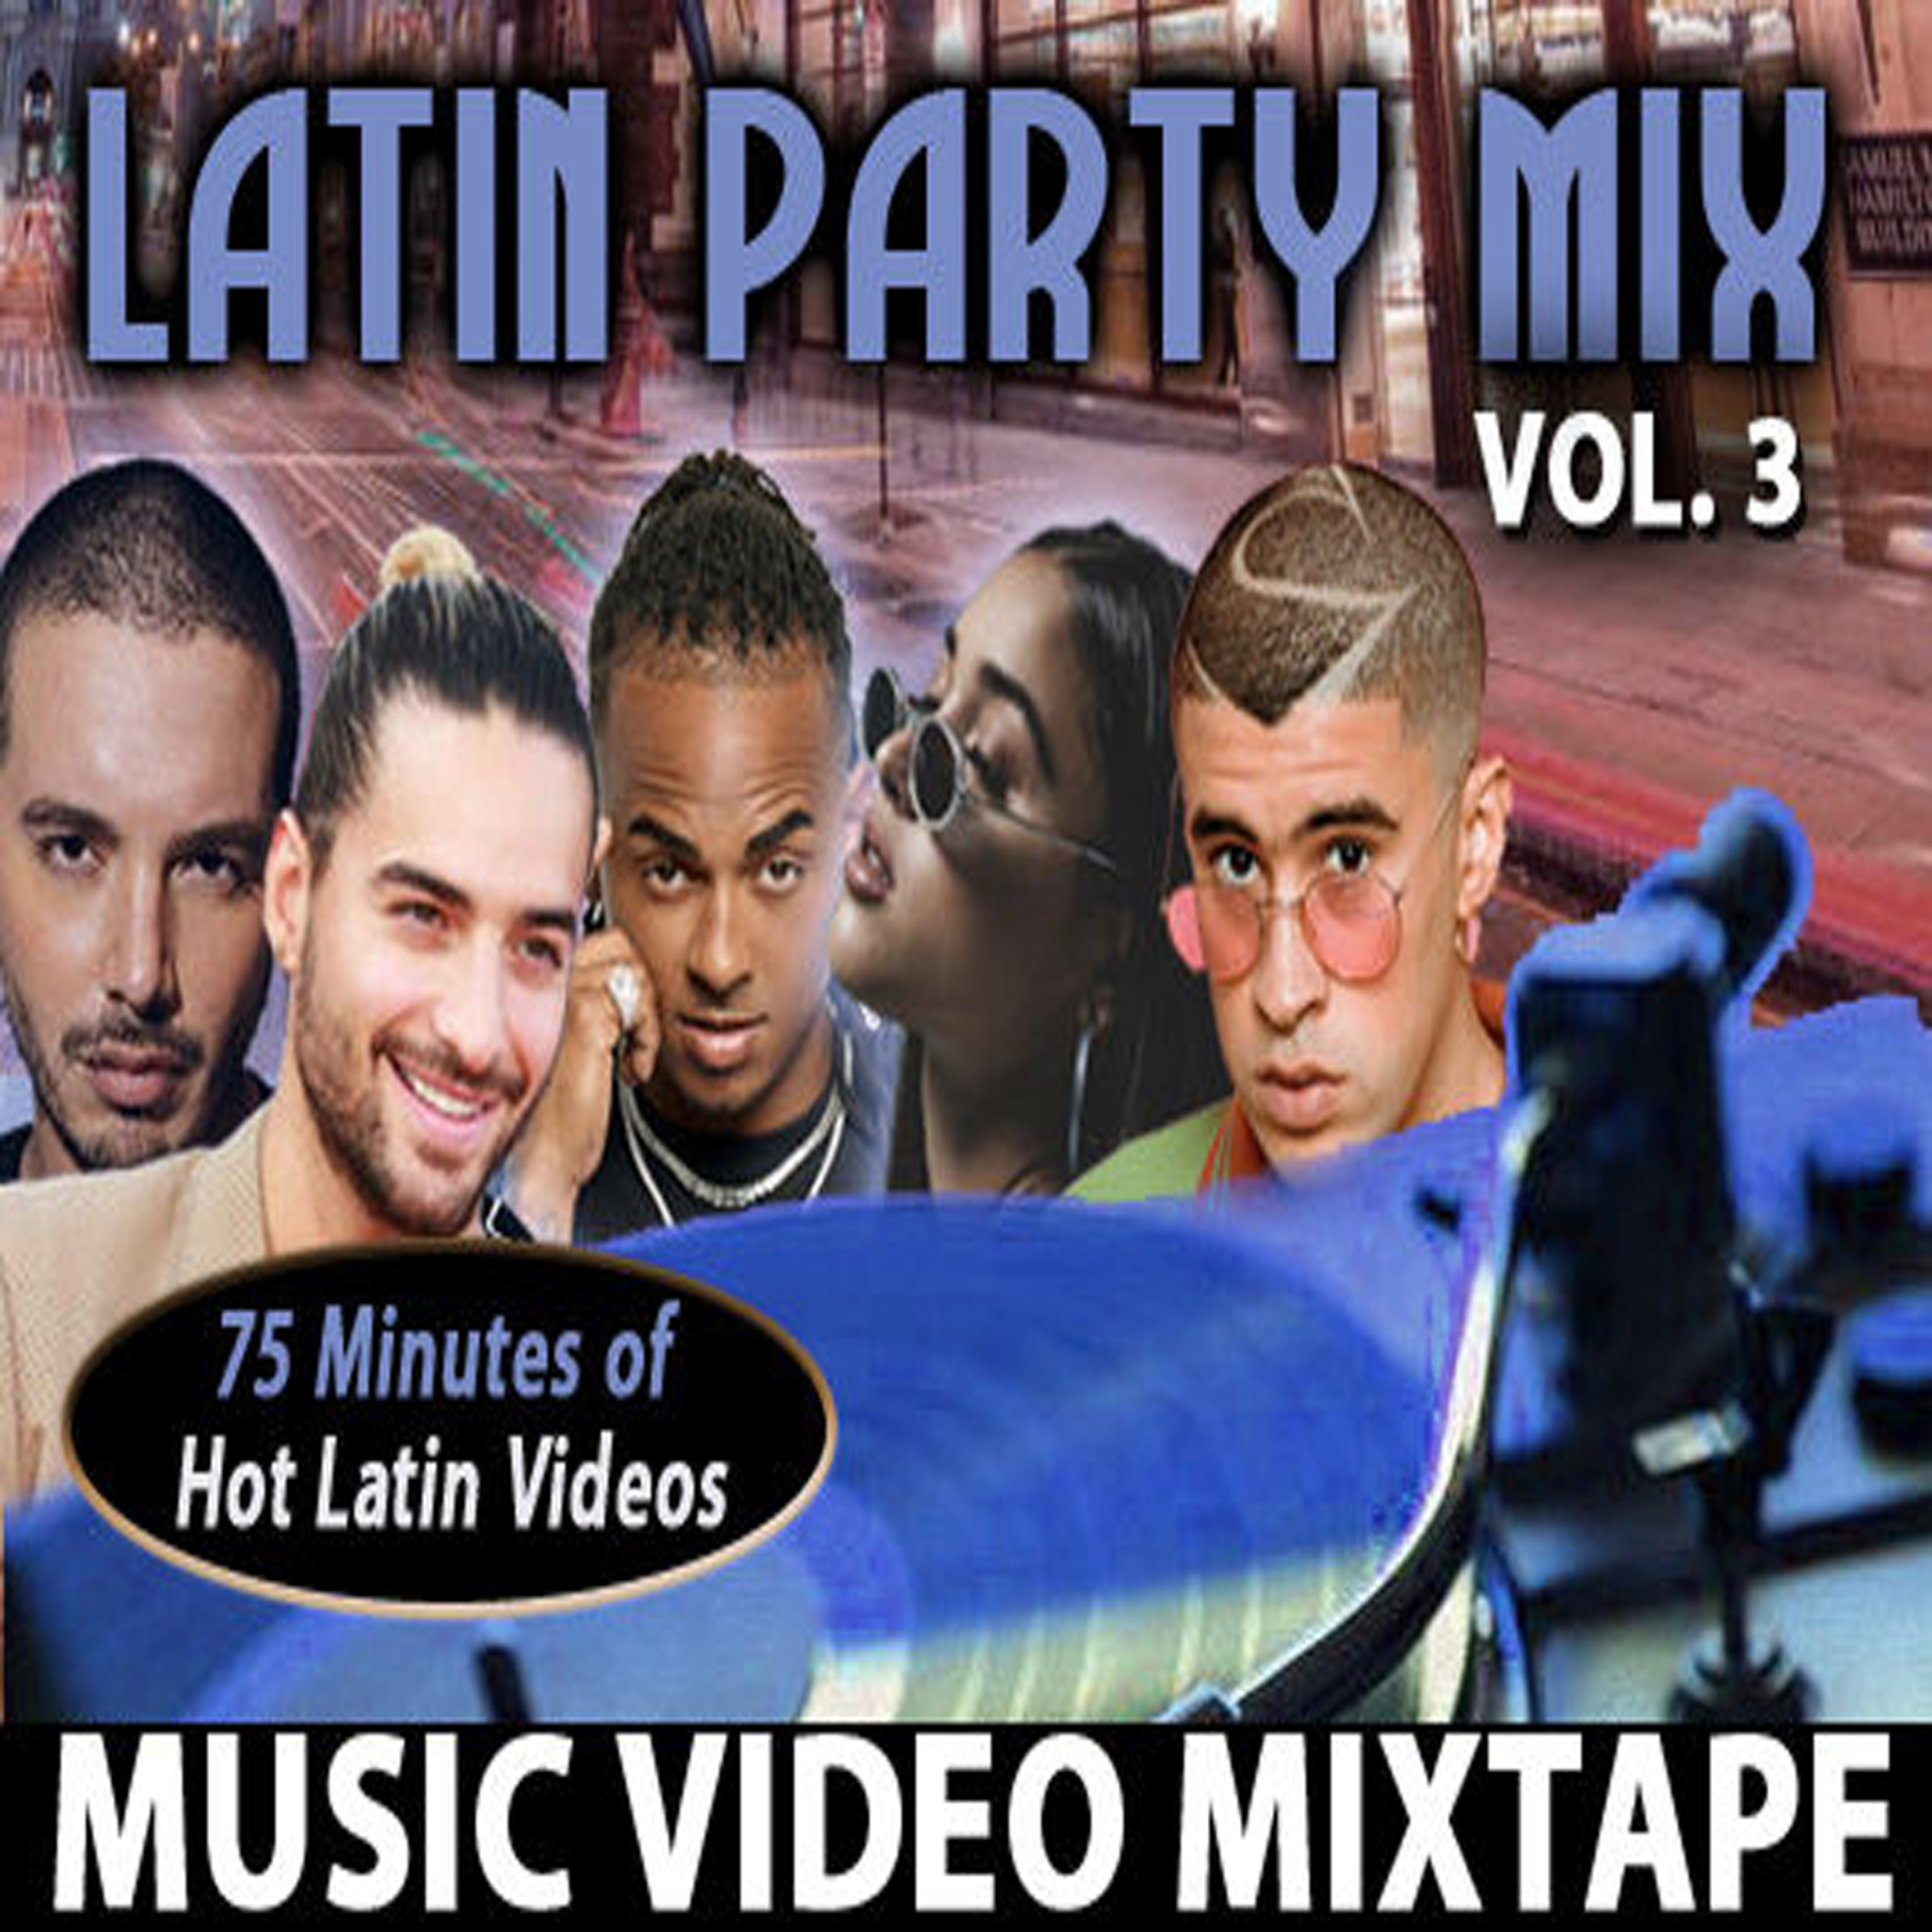 Latin Party Mix: Vol. 3 - Music Videos MP4